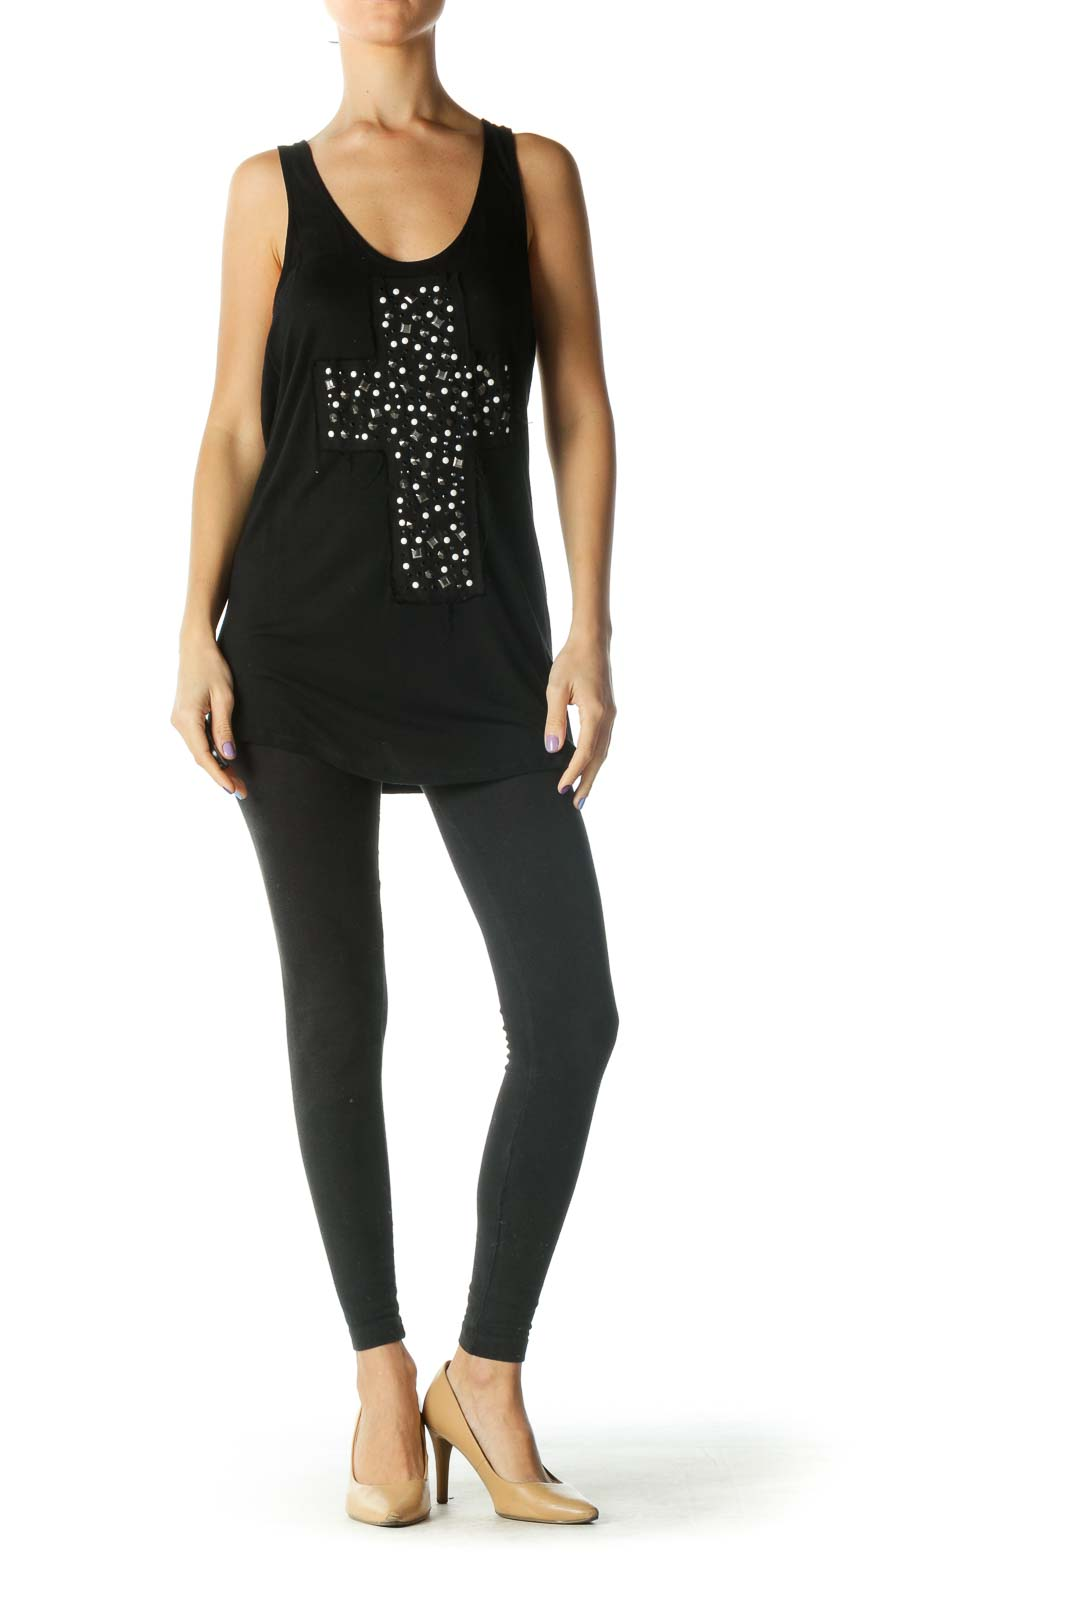 Black, Silver and White Studded Scoop Neck Tank Top